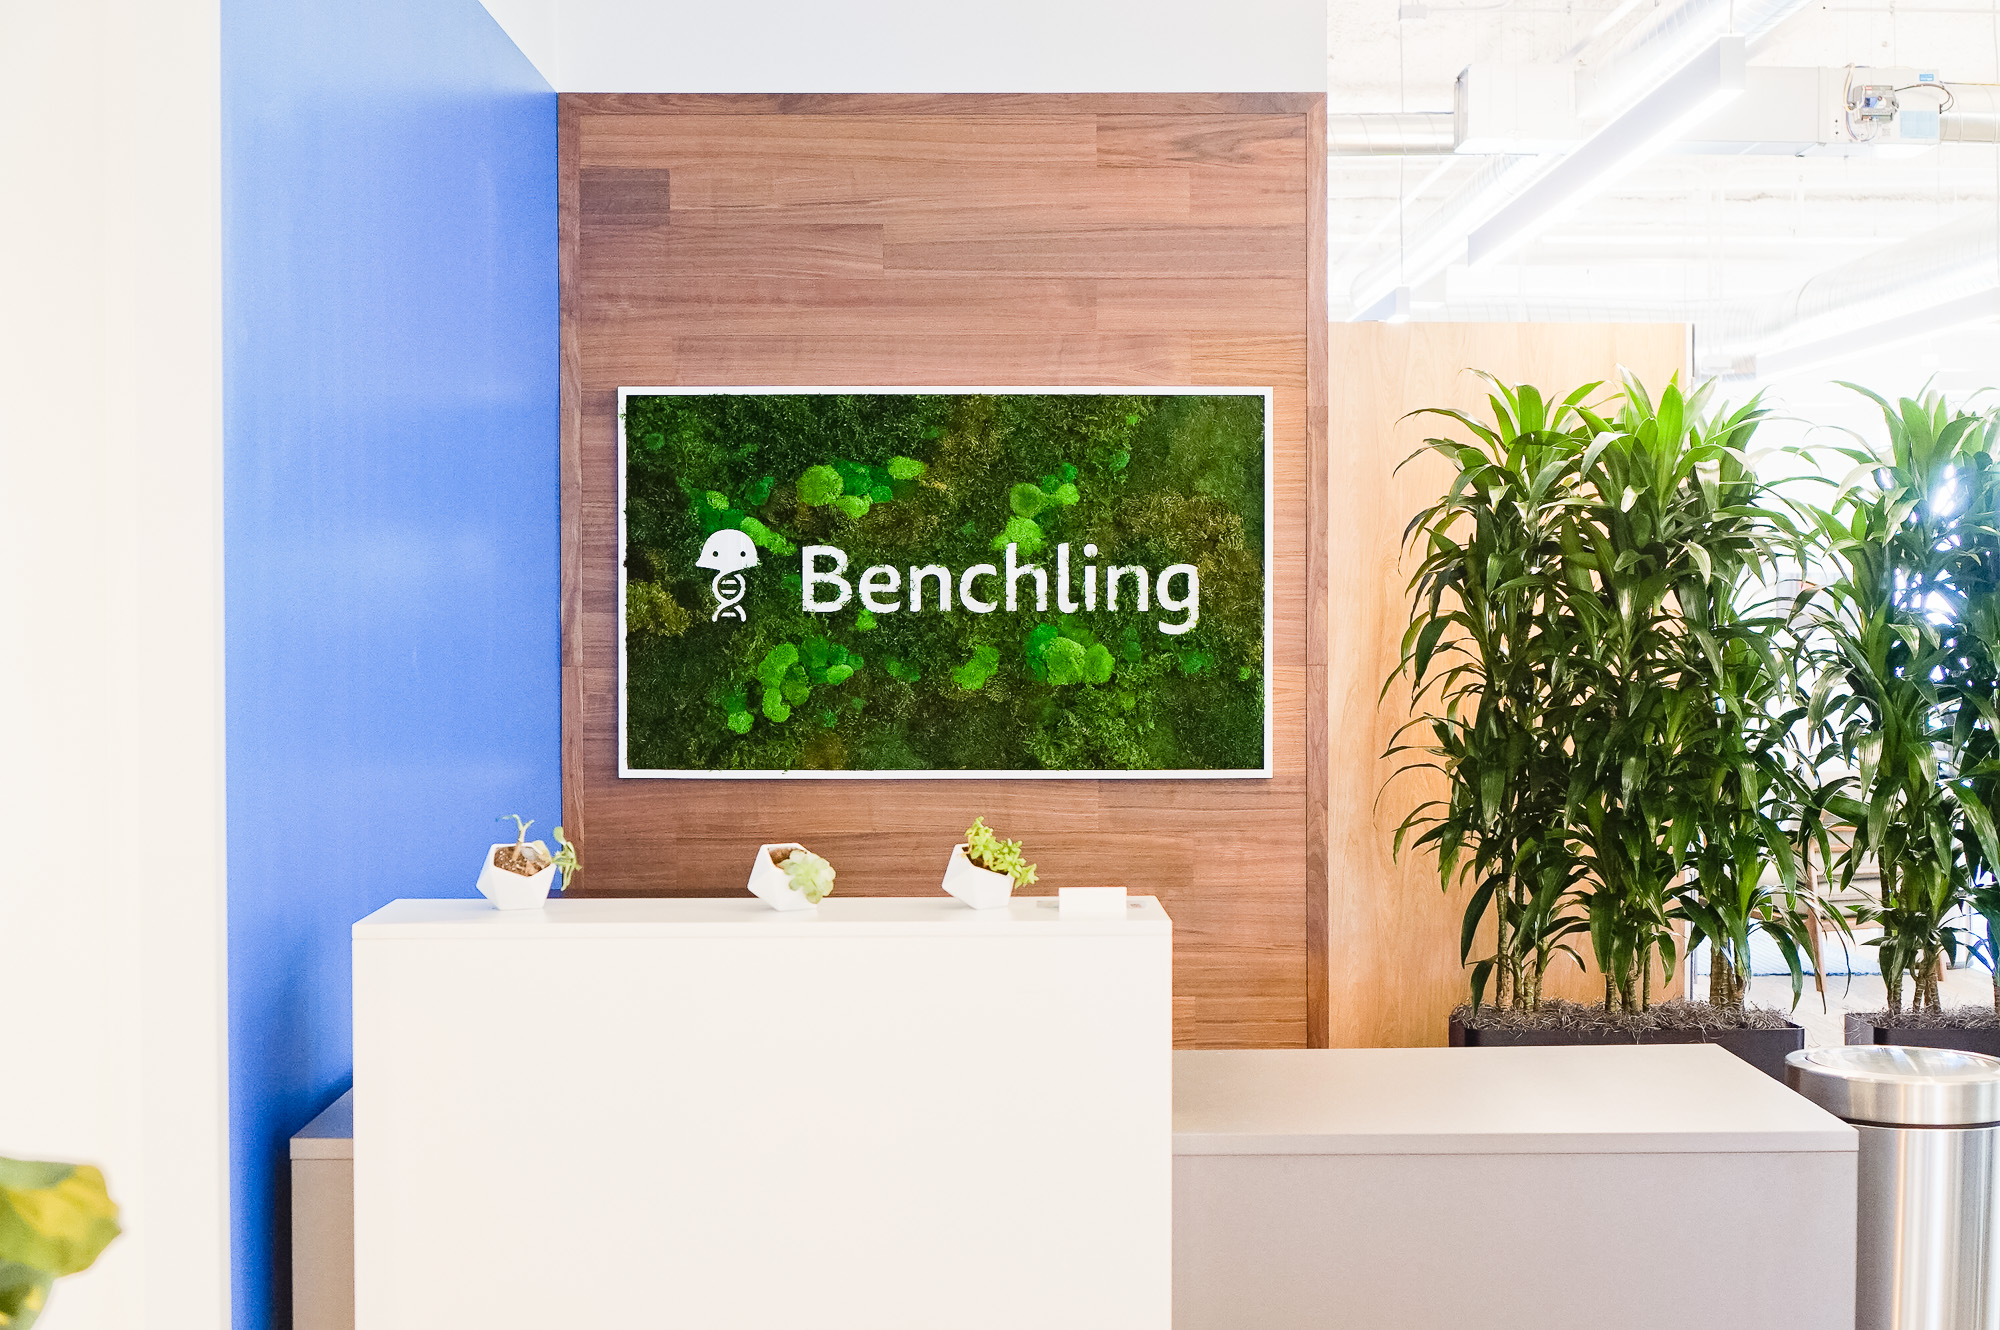 Moss-filled, framed box sign with white logo on walnut plank wall for the San Francisco office of Benchling, a unified platform to accelerate, measure, and forecast R&D from discovery through bioprocessing.